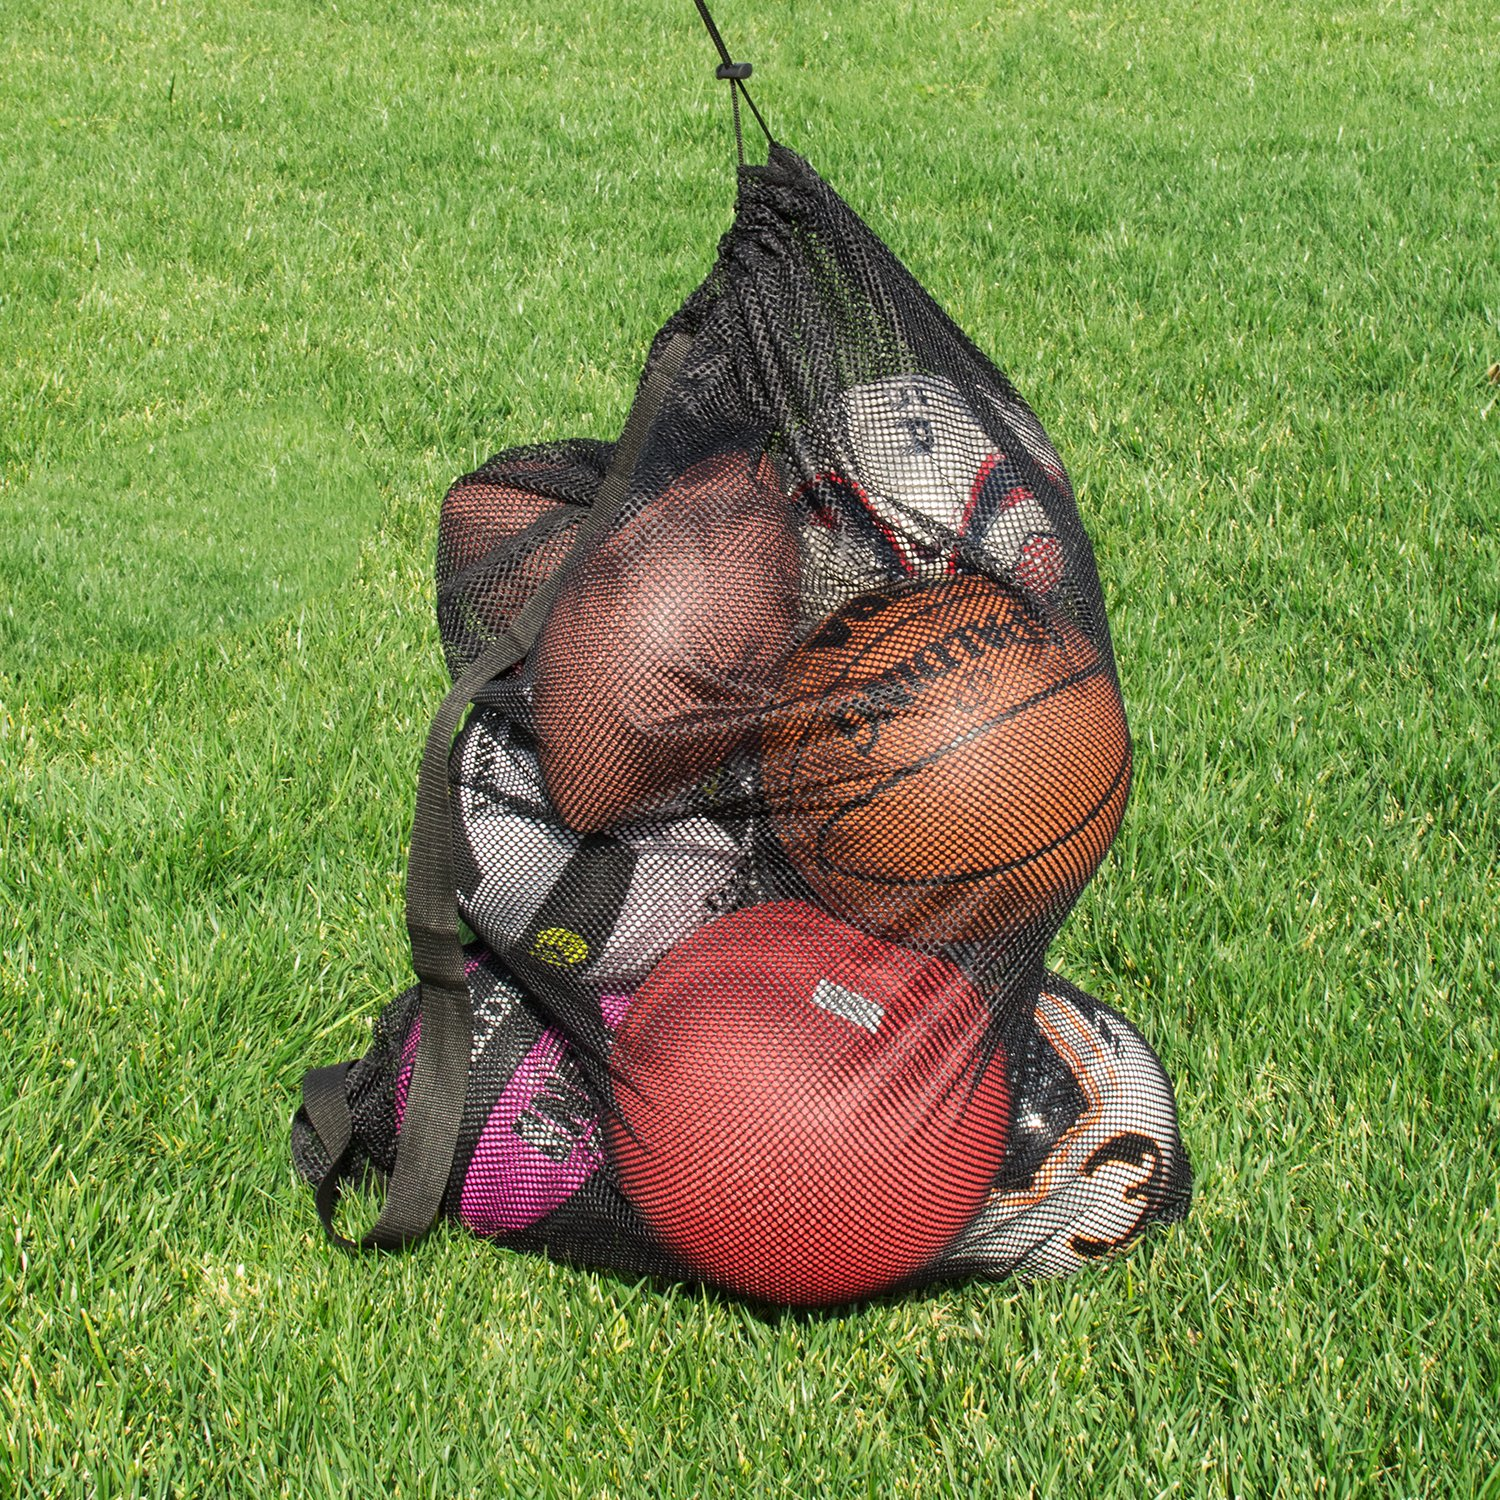 Super Z Outlet Sports Ball Bag Drawstring Mesh - Extra Large Professional Equipment with Shoulder Strap Black (30'' x 40'' Inches) by Super Z Outlet (Image #1)